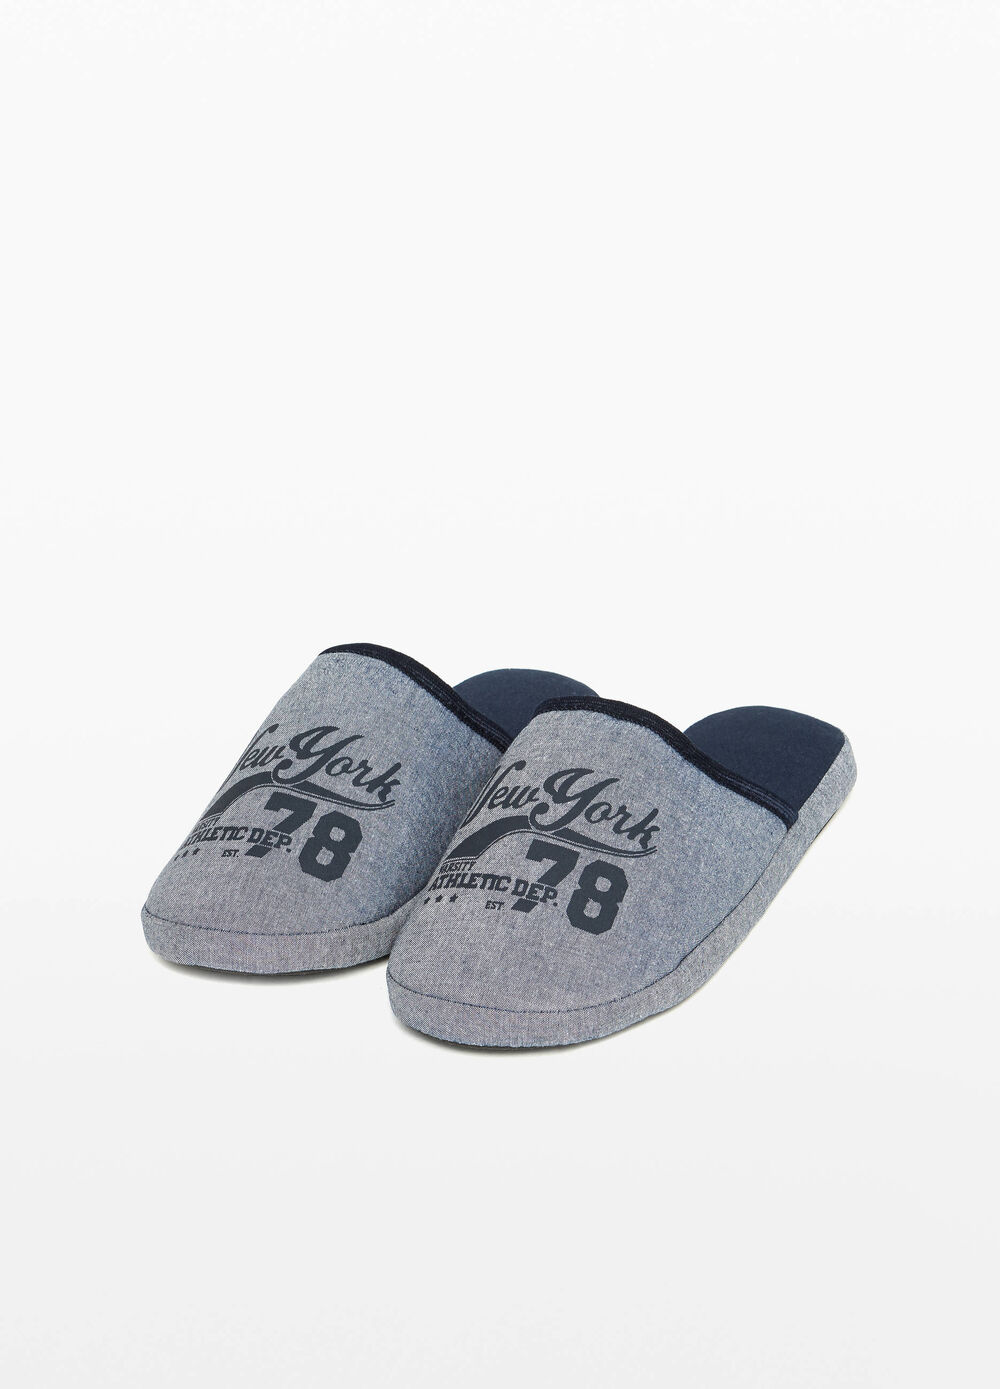 Slippers with trim and printed lettering